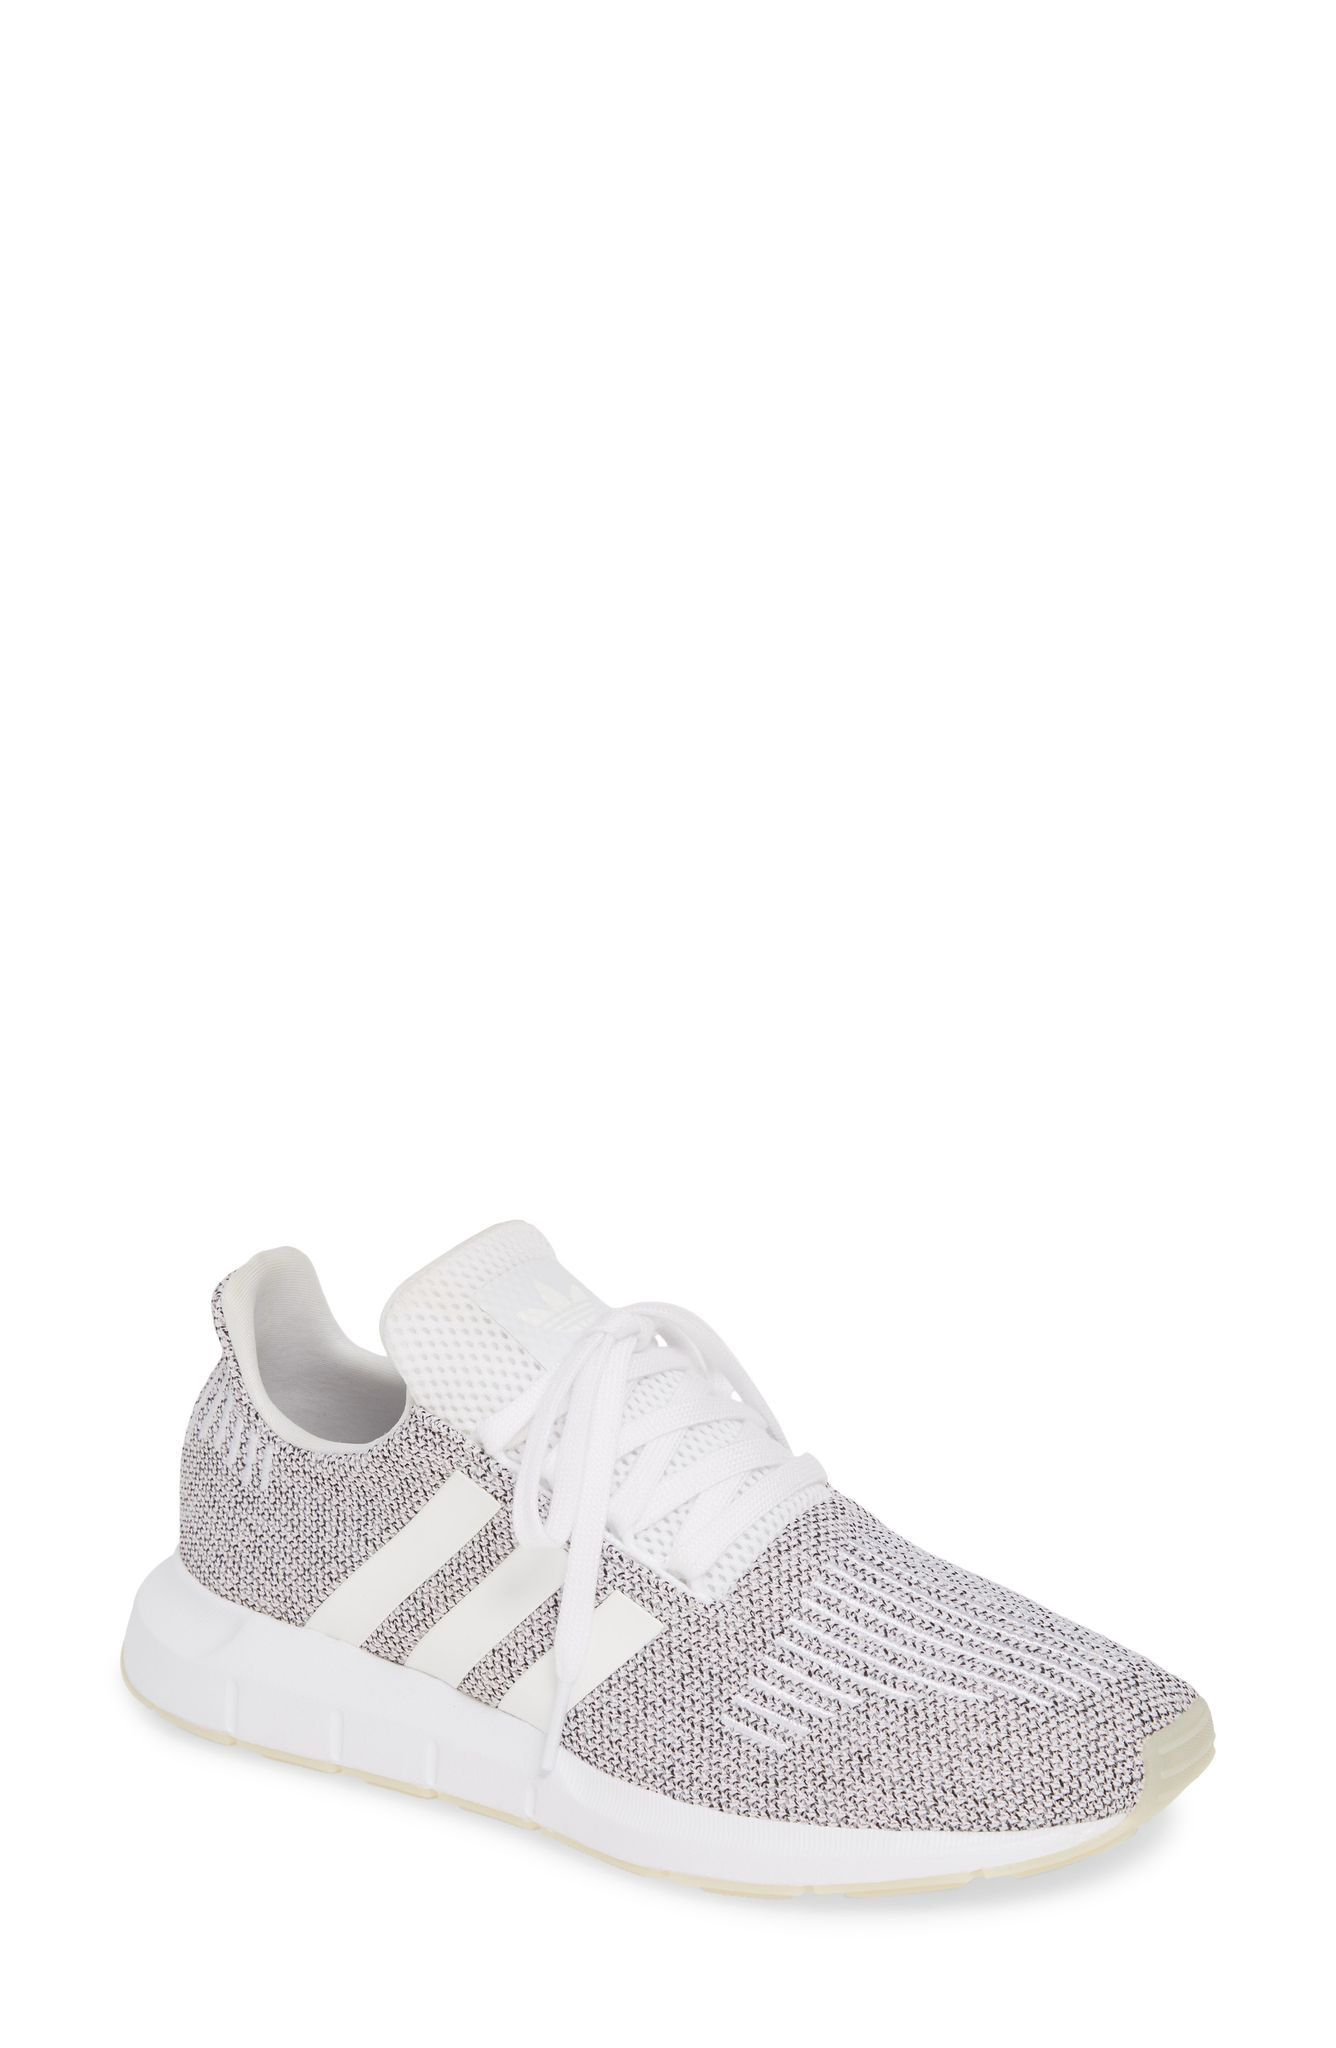 Adidas Swift Run (normally $85): NOW $63.90 (Image: Nordstrom){ }